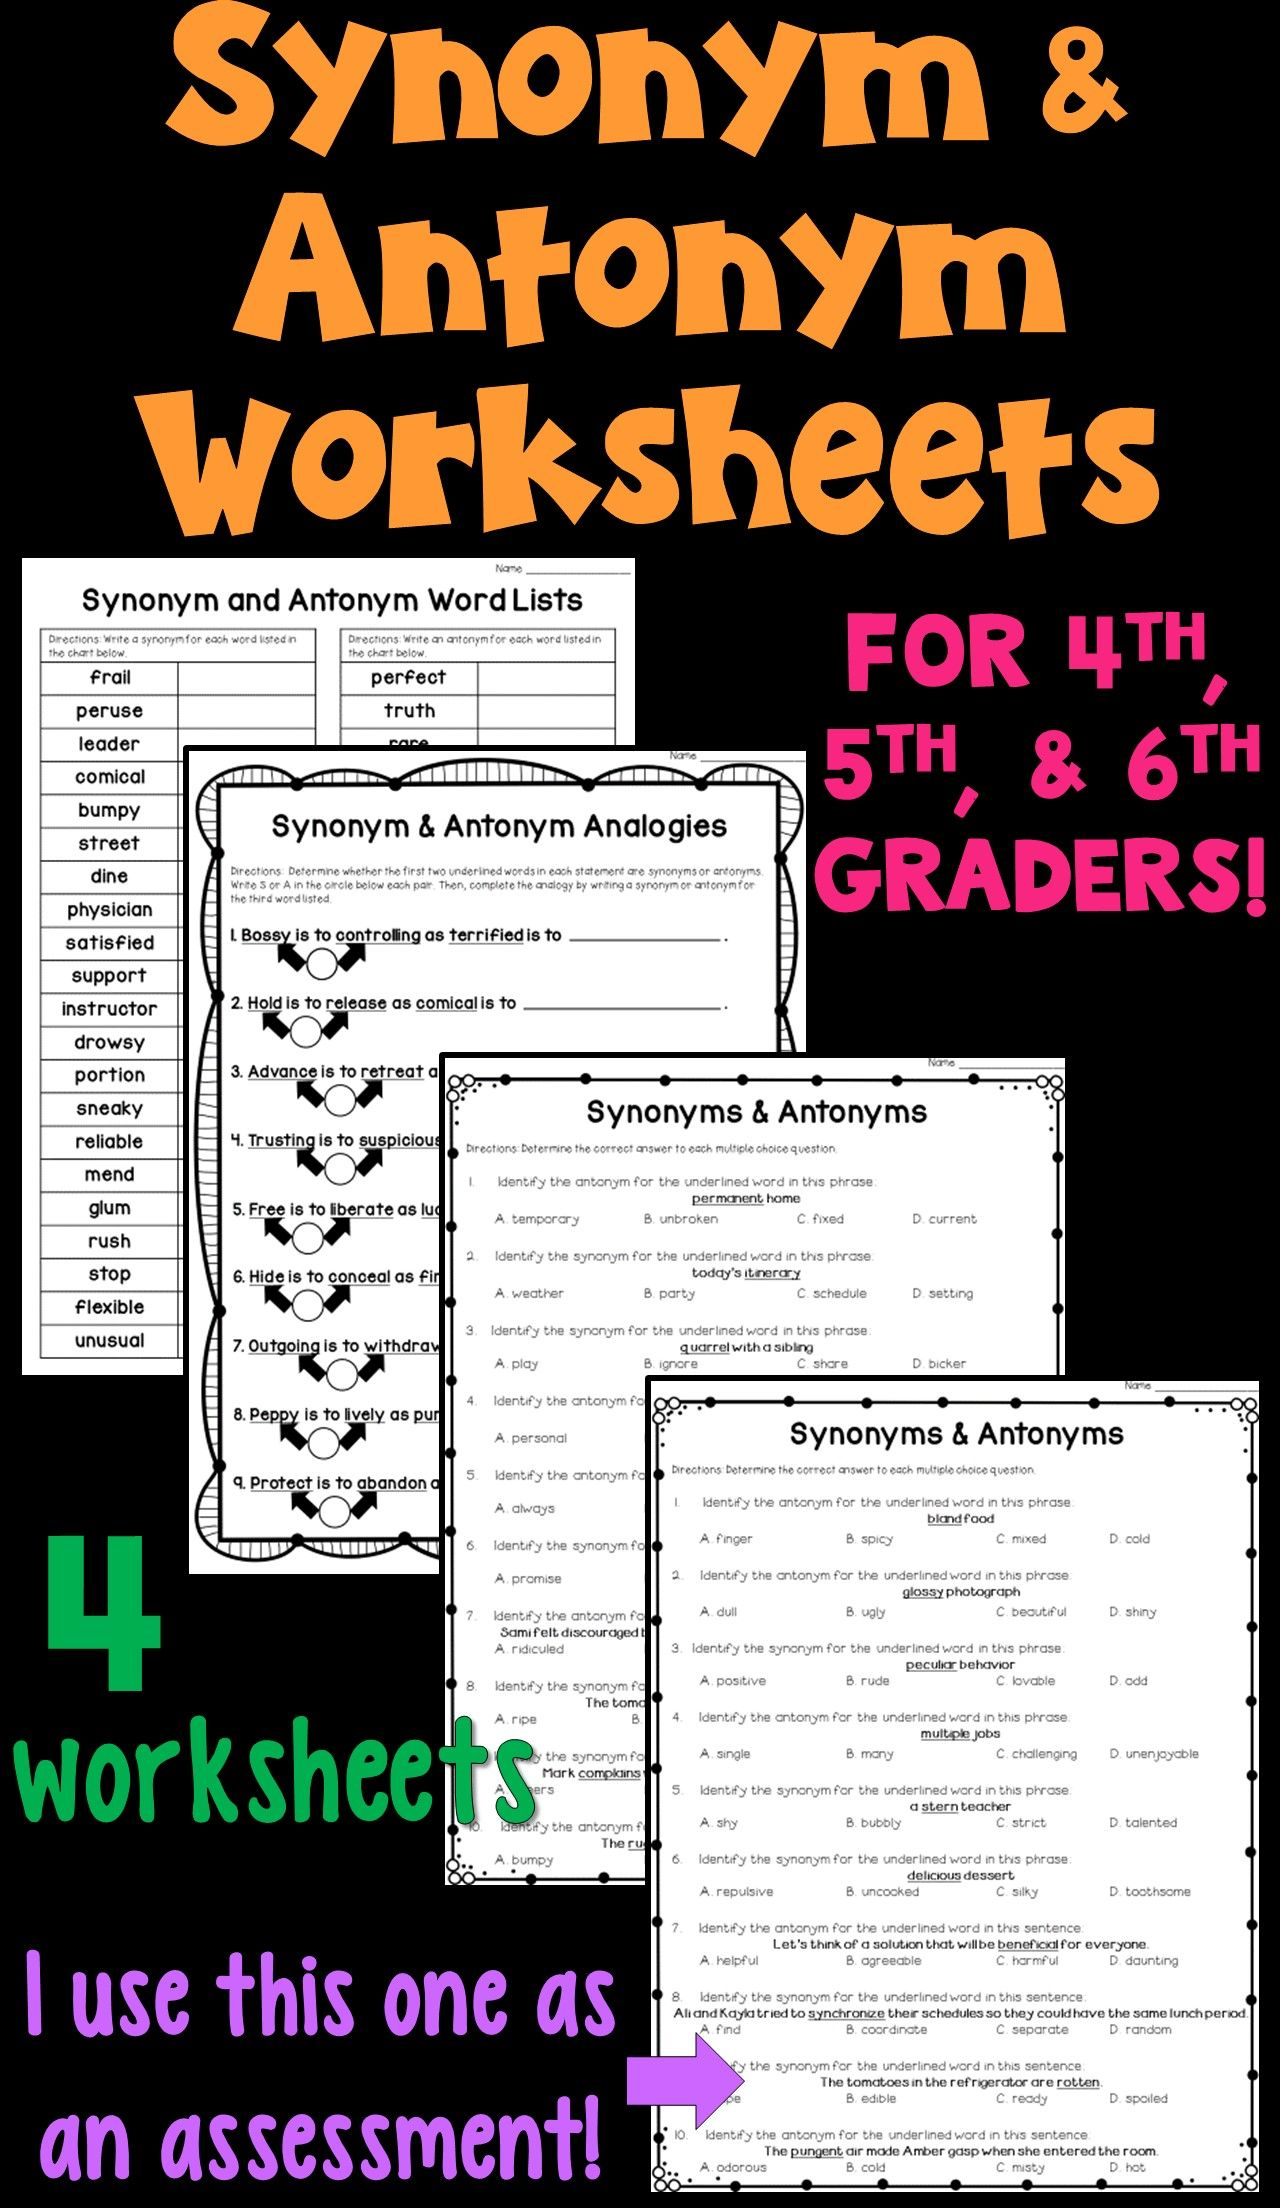 Synonyms And Antonyms Worksheet Packet These 4 Worksheets Focus On Generating Synonyms An Synonyms And Antonyms Antonyms Worksheet Synonyms And Antonyms Words